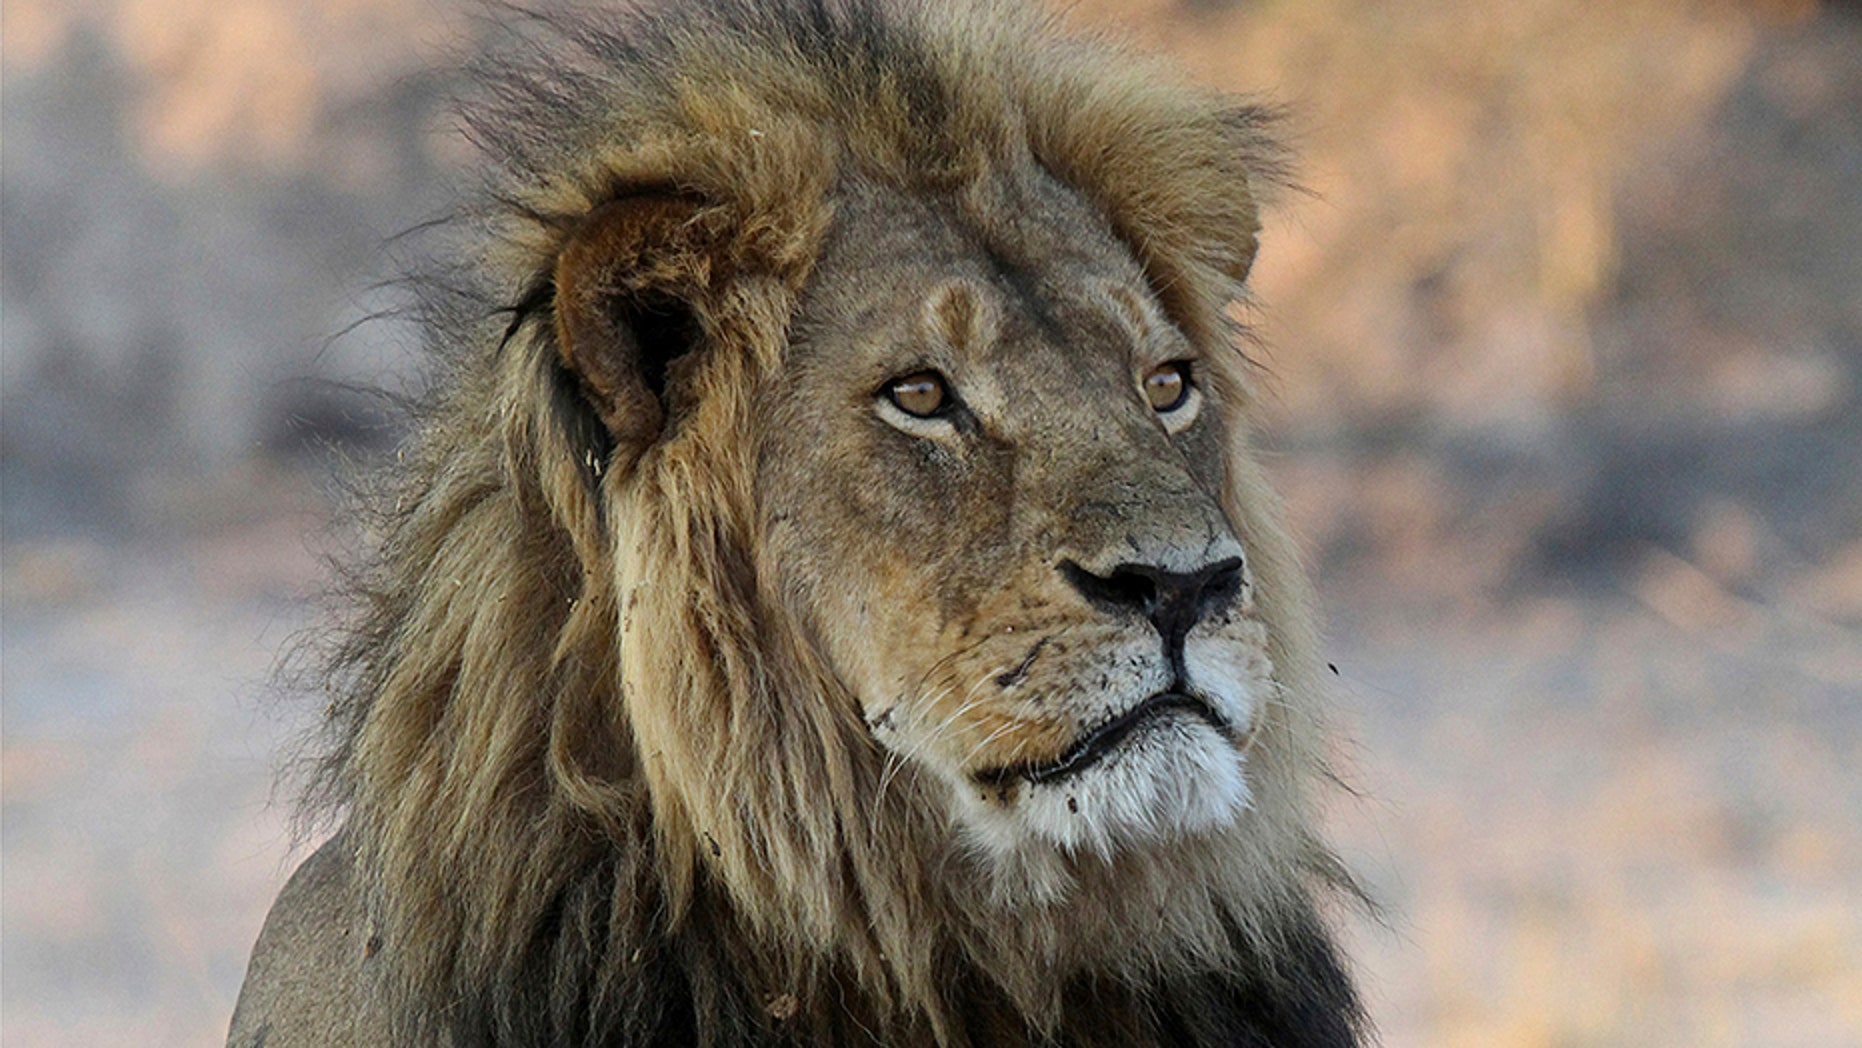 Cecil the lion, seen in this file photo, reportedly suffered for up to 12 hours before his eventual death in July 2015.